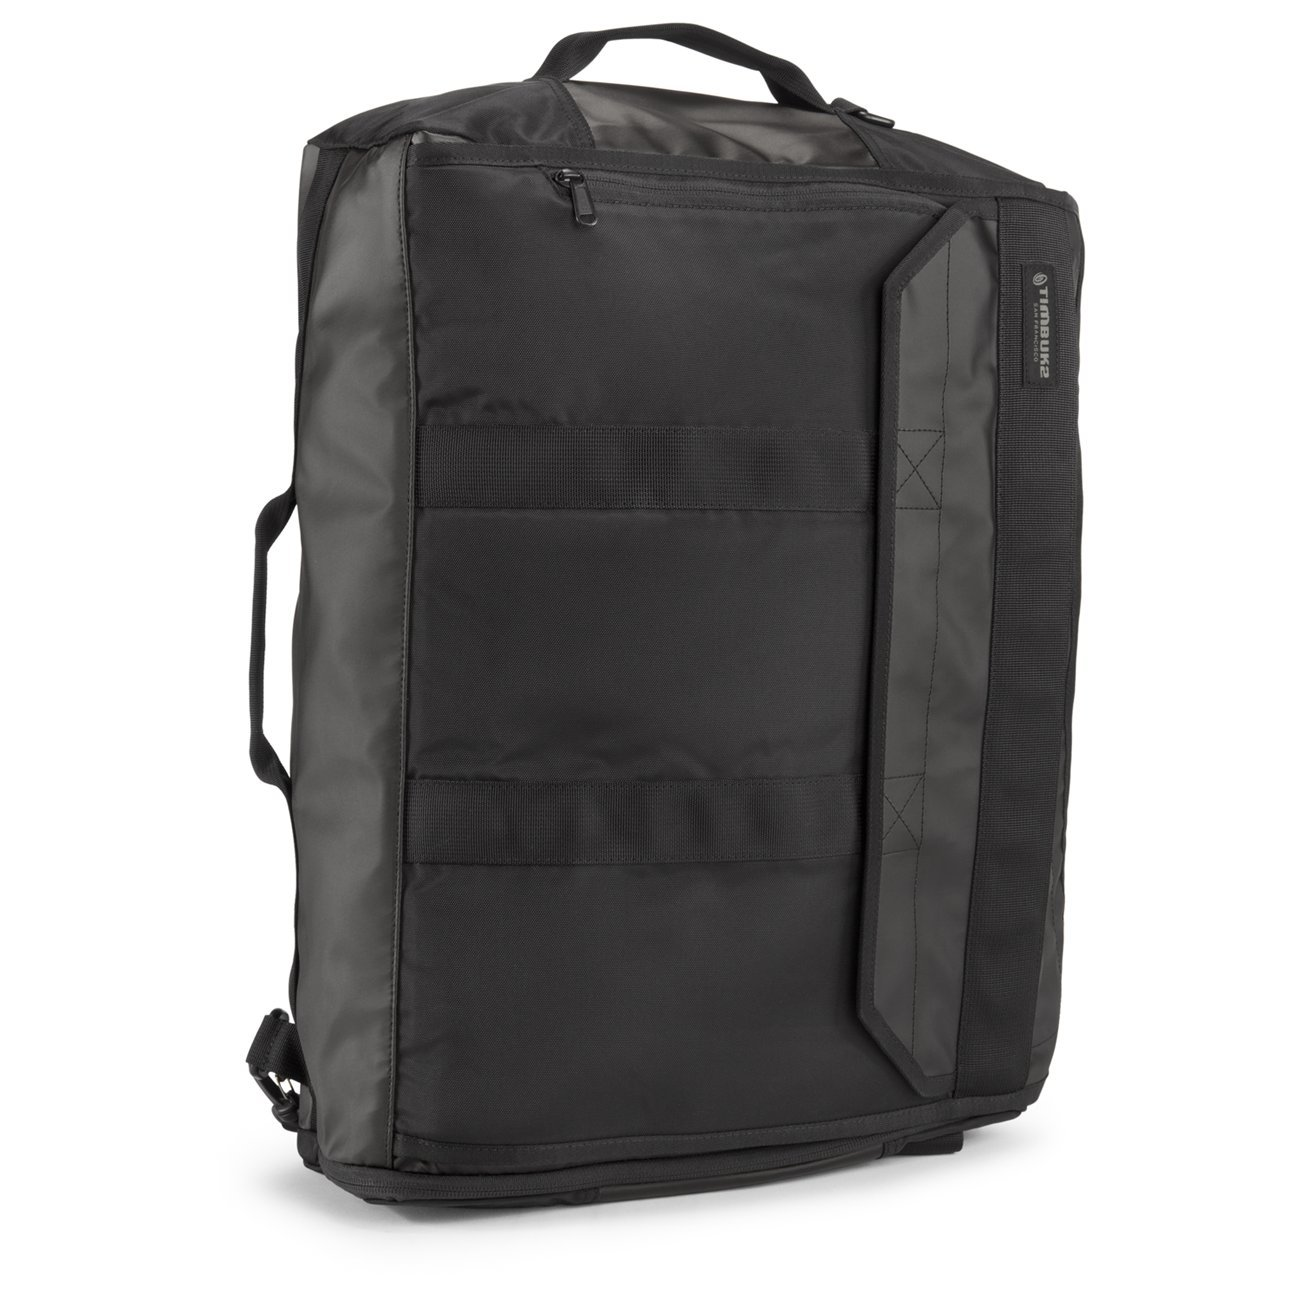 Timbuk2 528-4-2000 Wingman Travel Duffel Bag, Black by Timbuk2